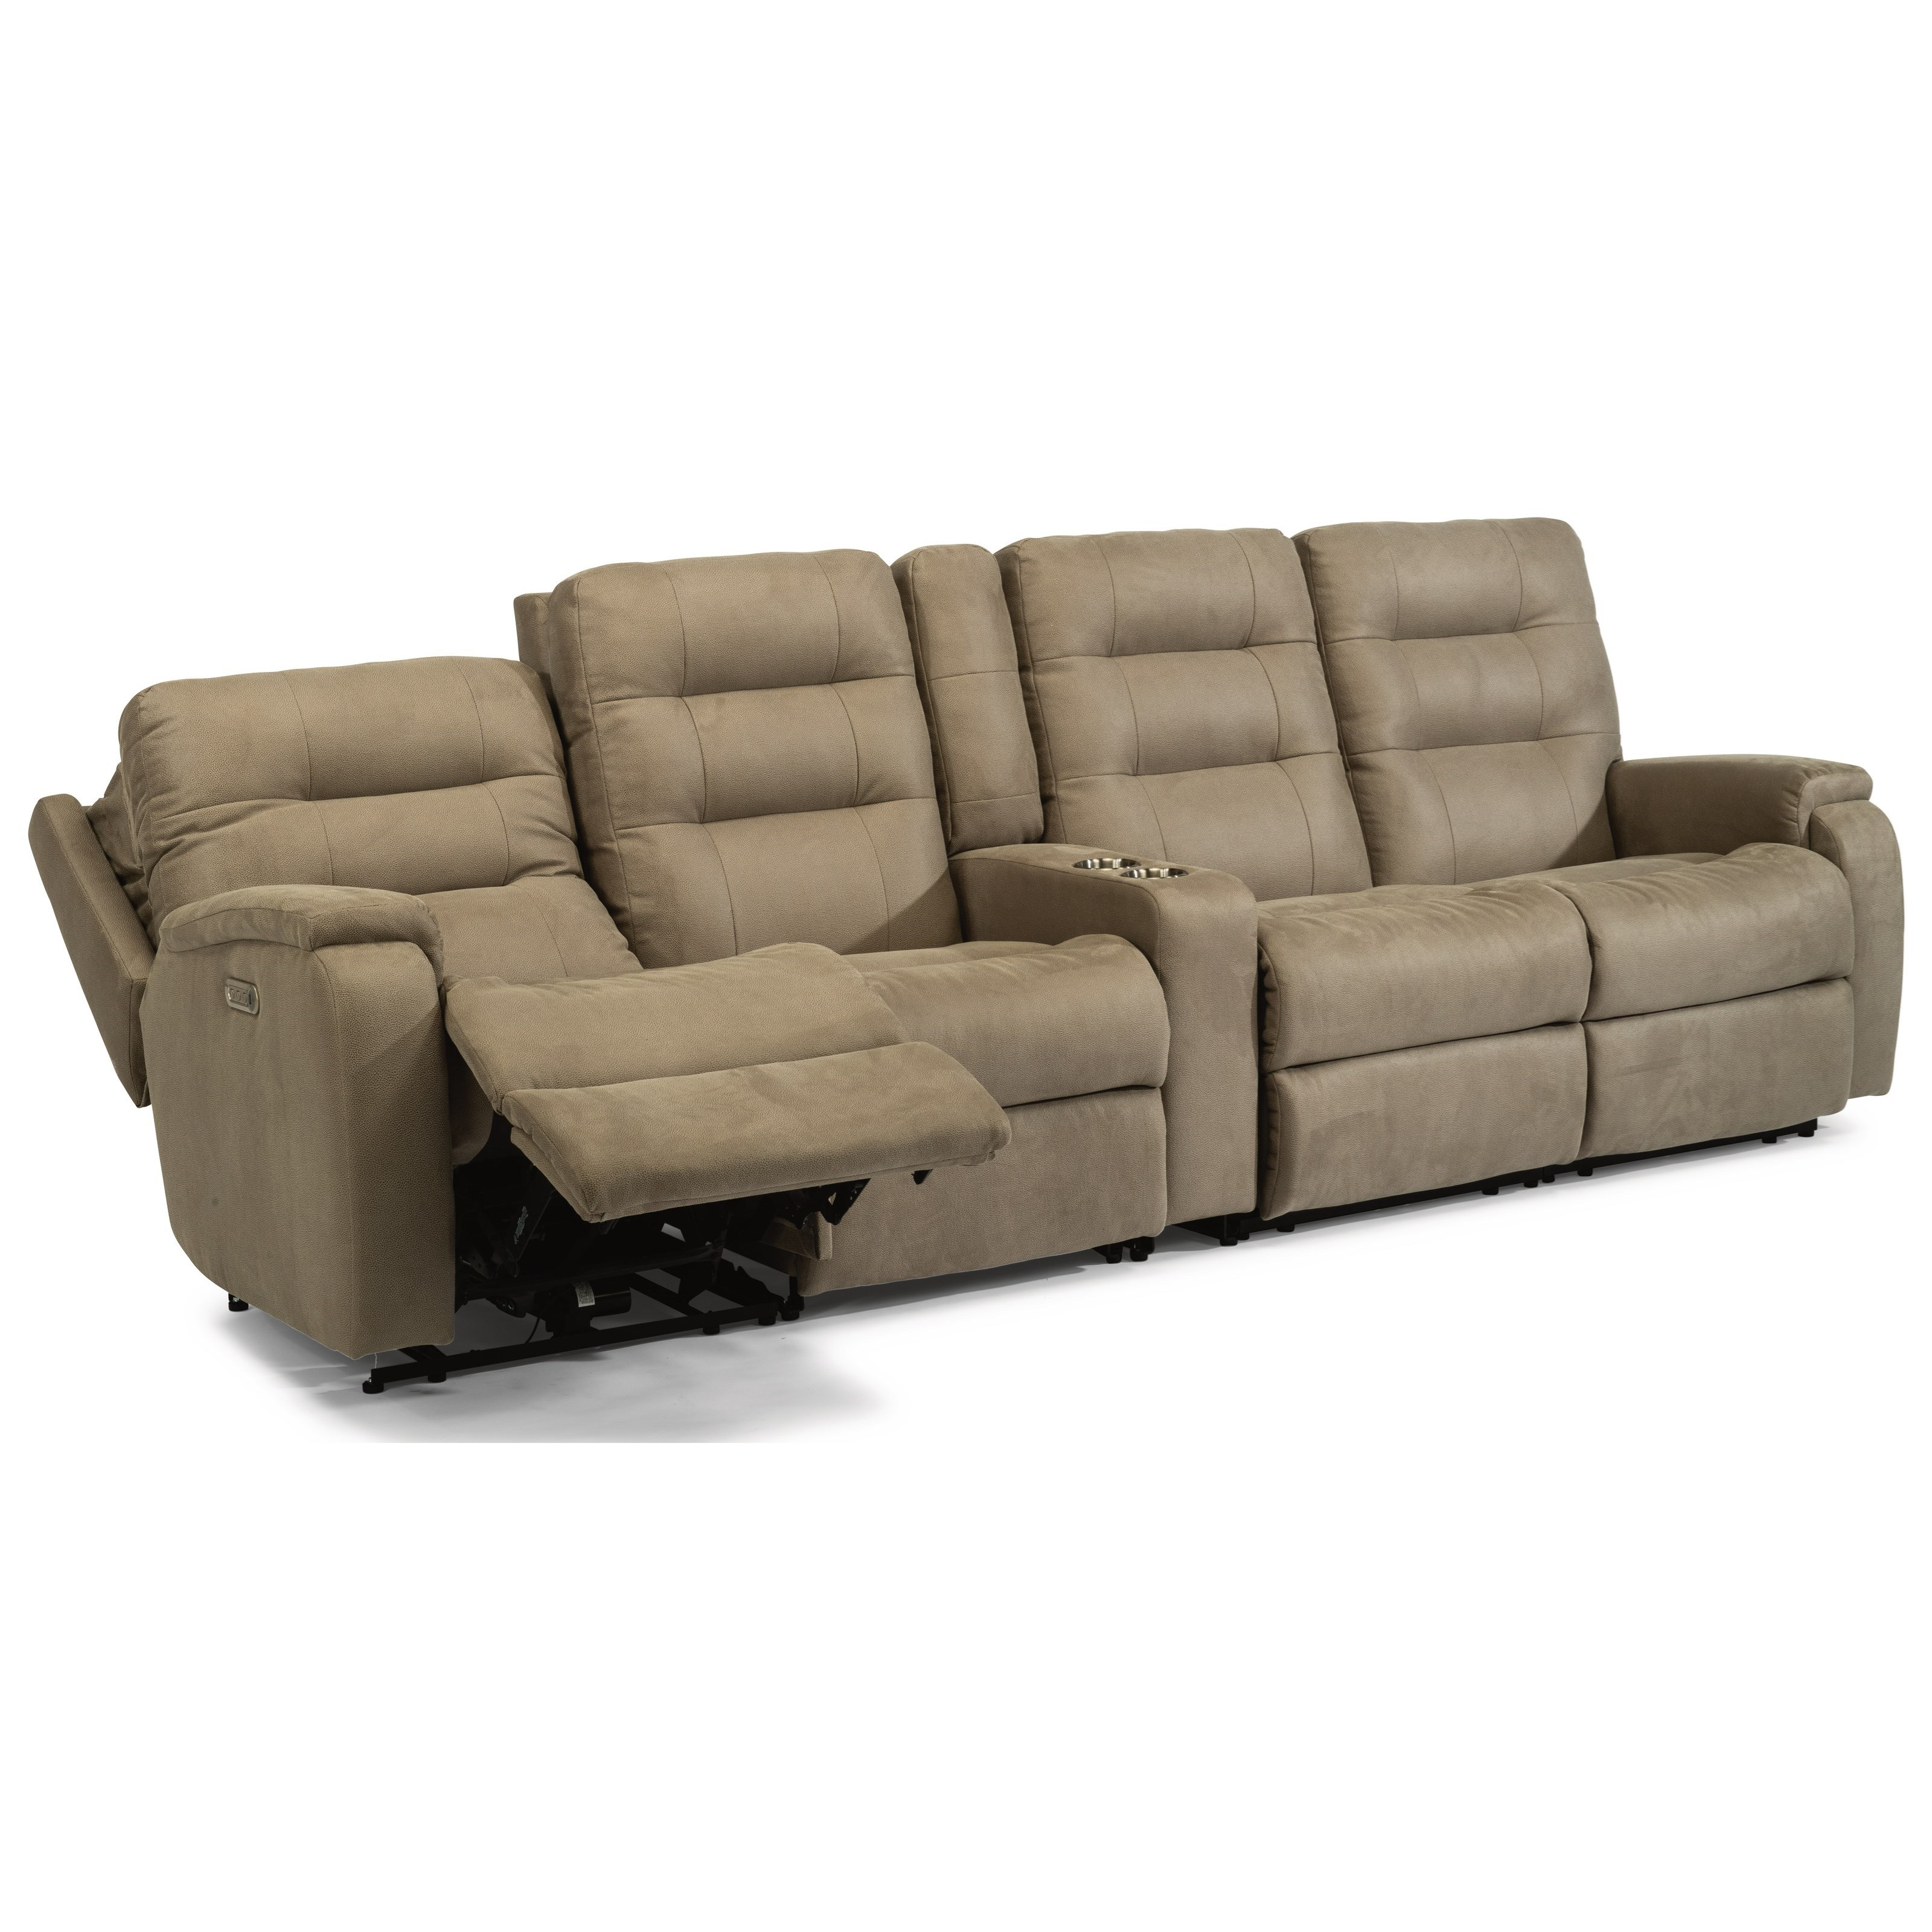 Arlo 5-Piece Reclining Sectional by Flexsteel at Williams & Kay